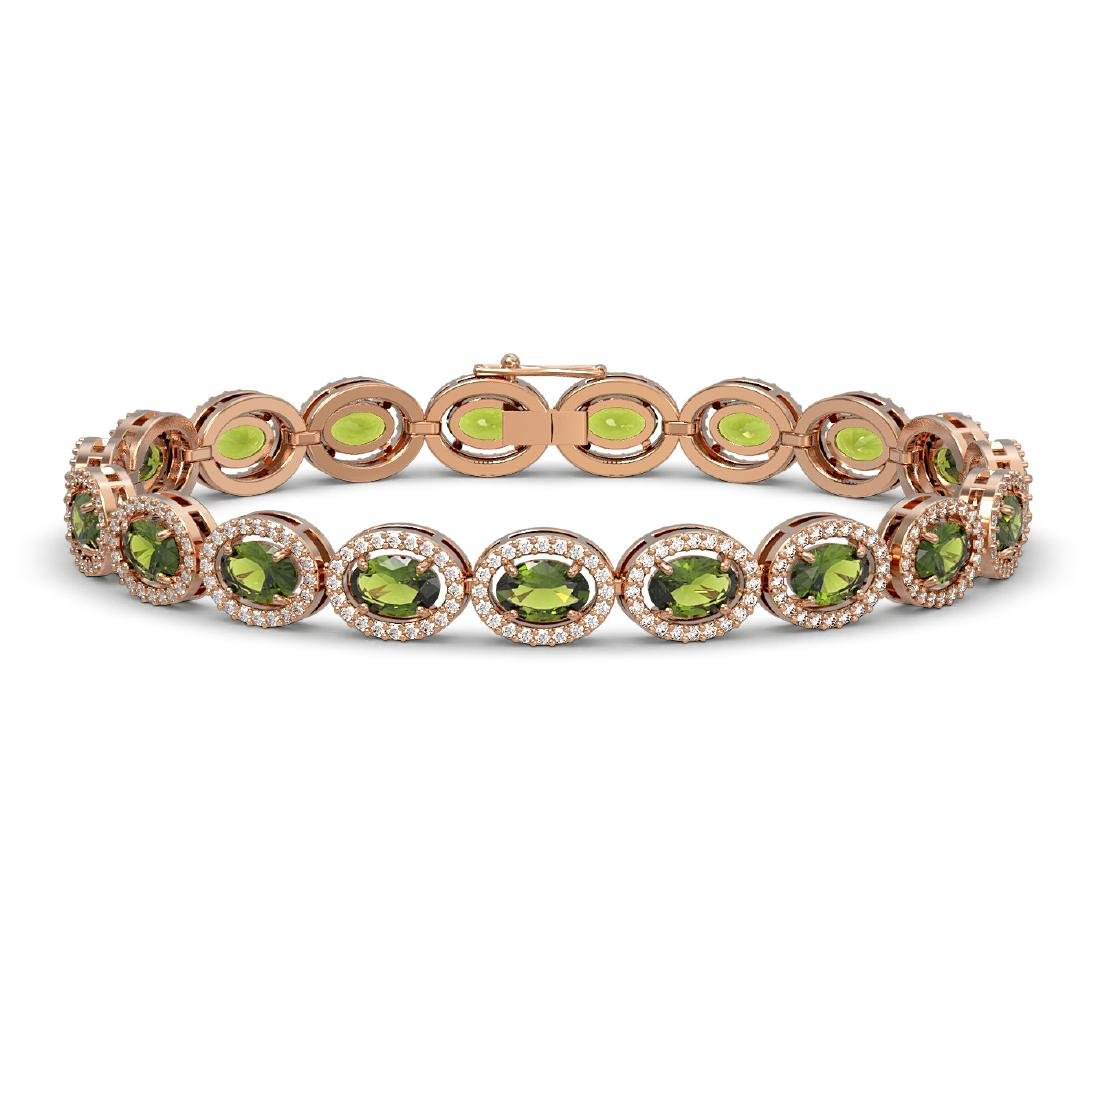 13.87 CTW Tourmaline & Diamond Halo Bracelet 10K Rose